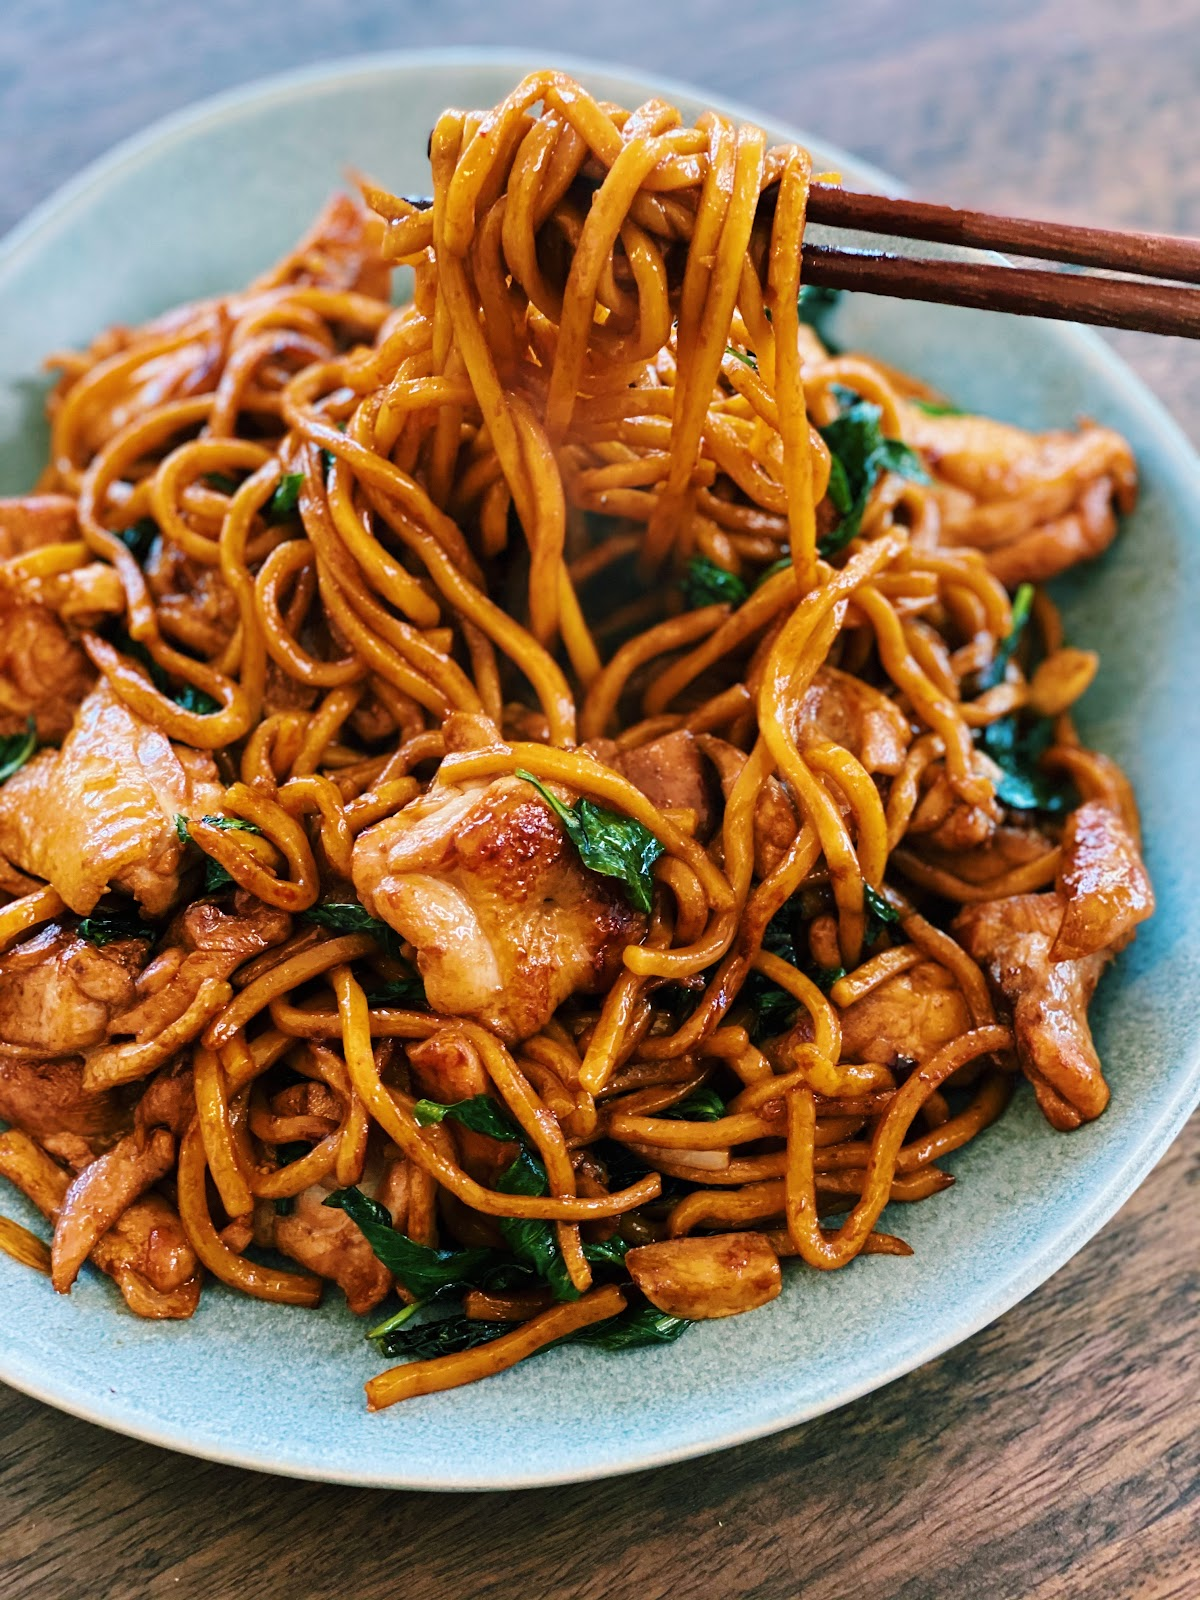 3 Cup Chicken Noodle Stir-Fry (20 Minutes ONLY!)